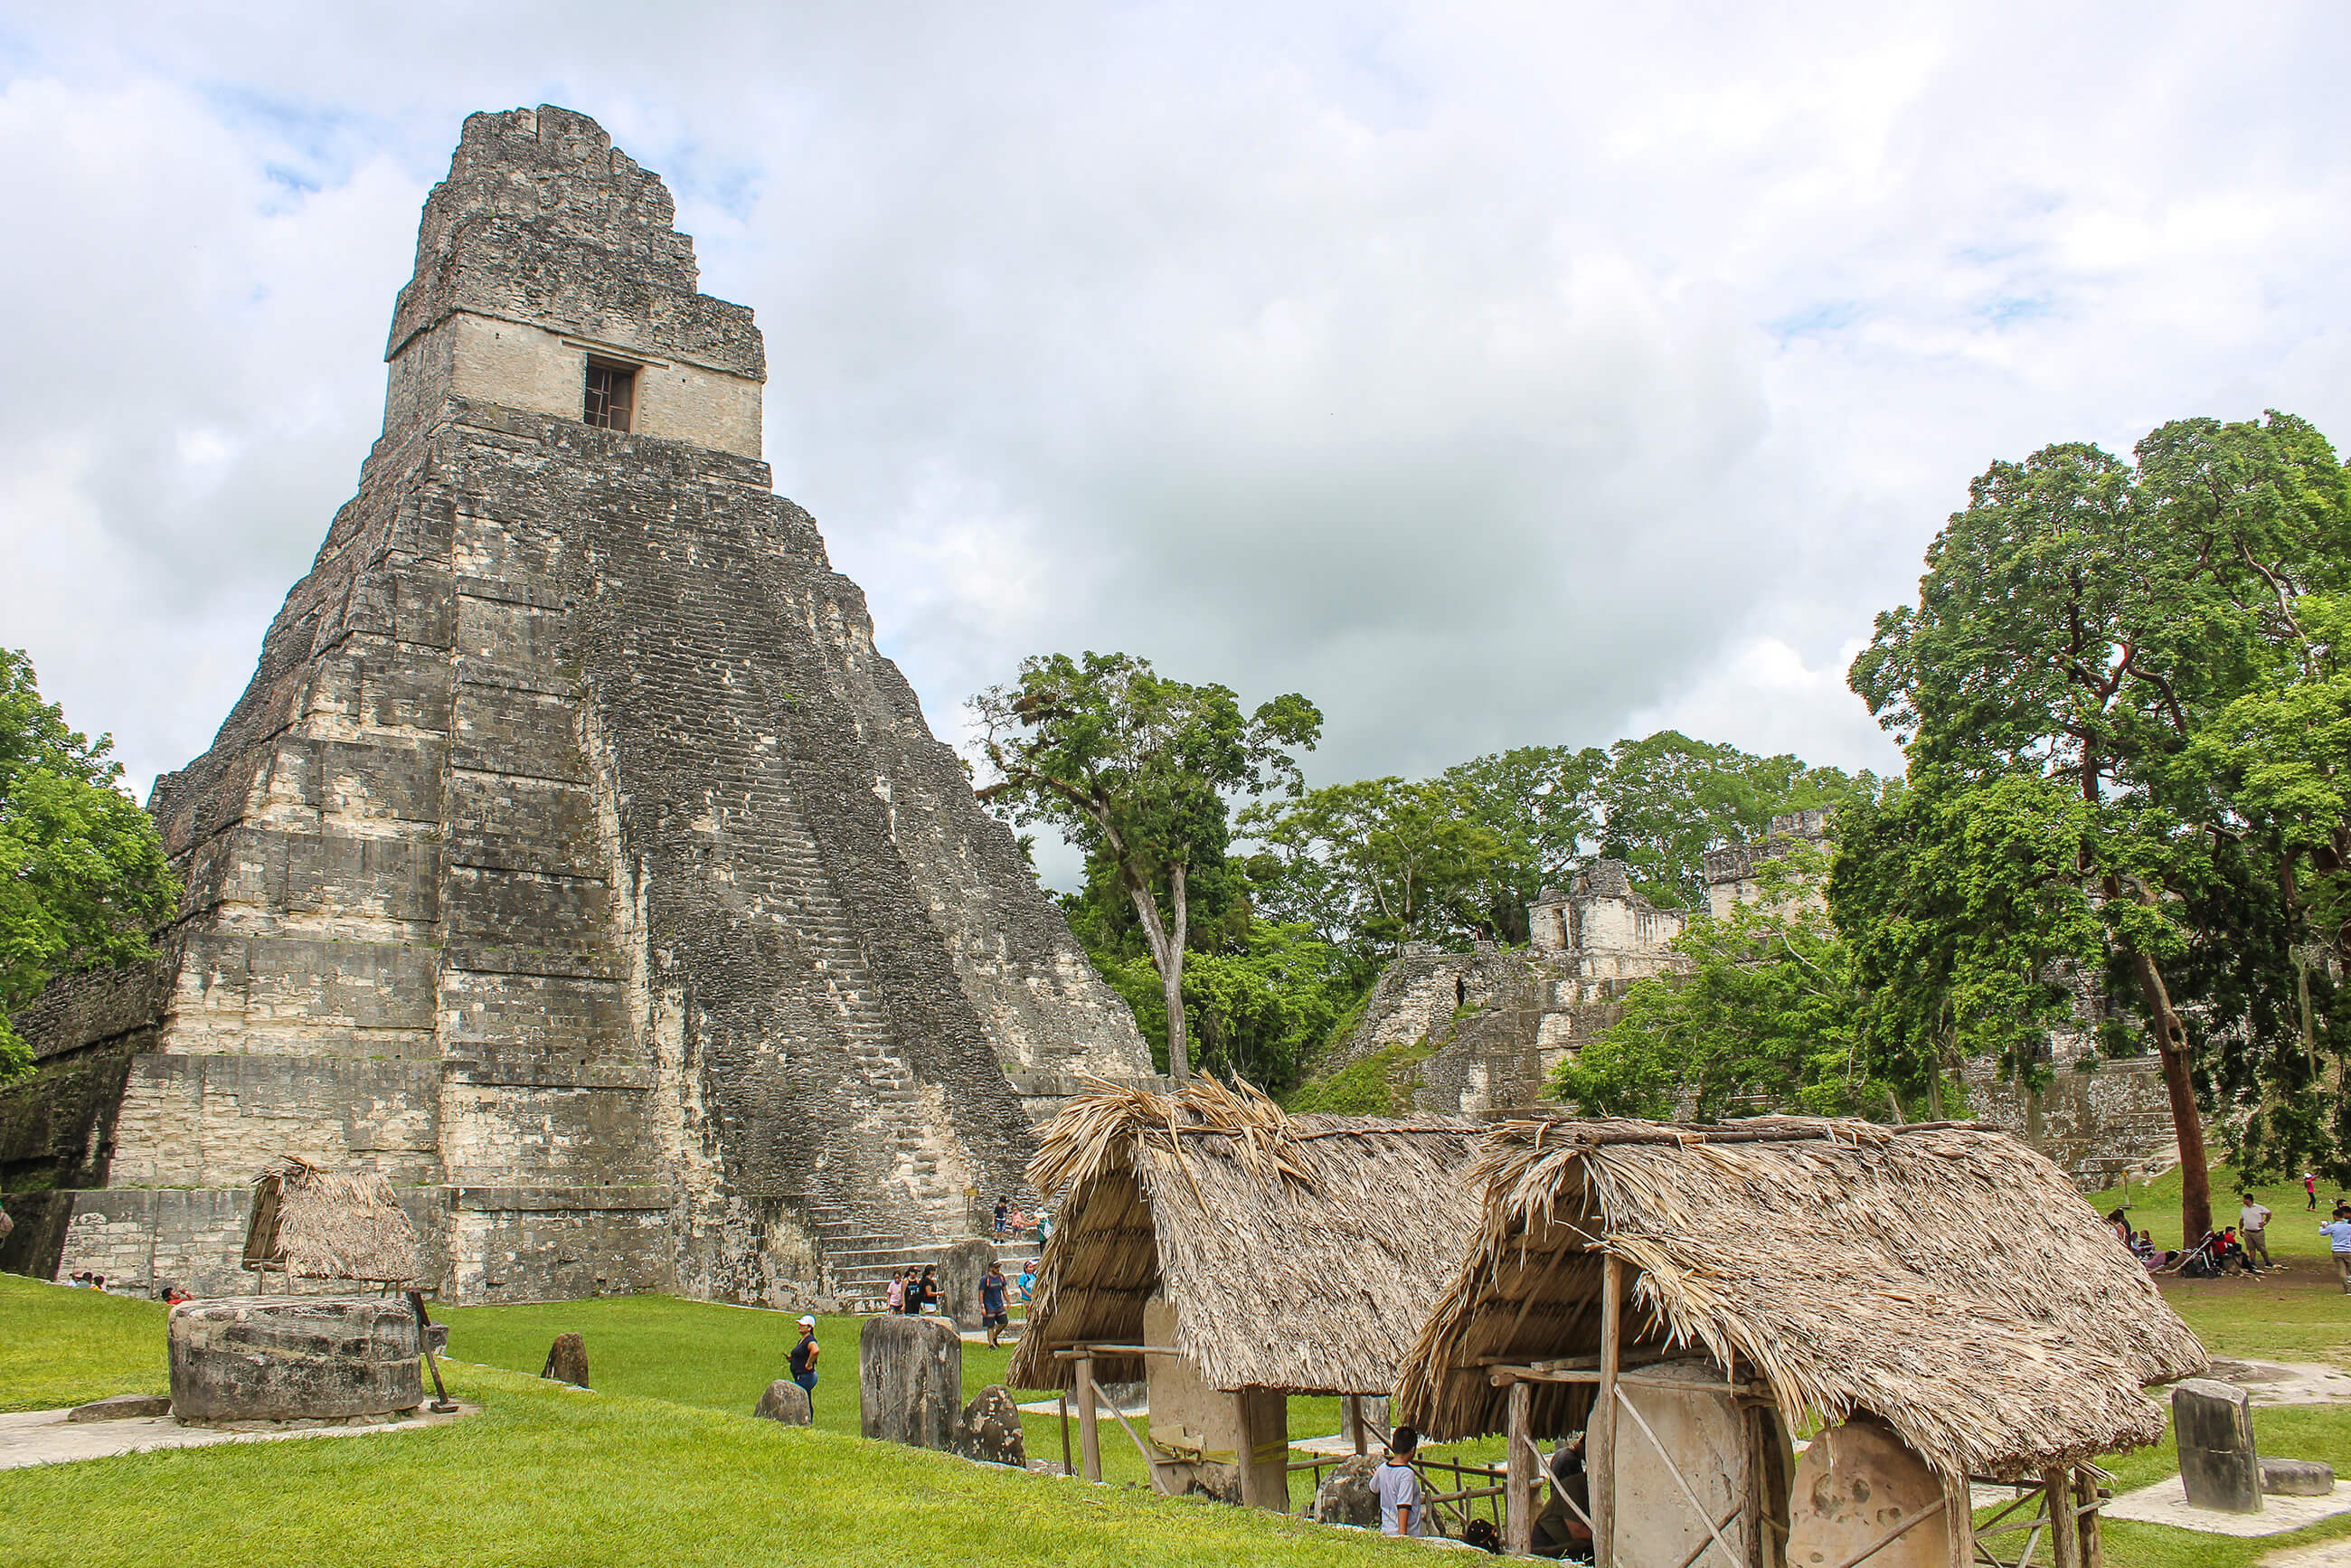 https://bubo.sk/uploads/galleries/7388/alena_spisakova_guatemala_tikal_img_5018.jpg